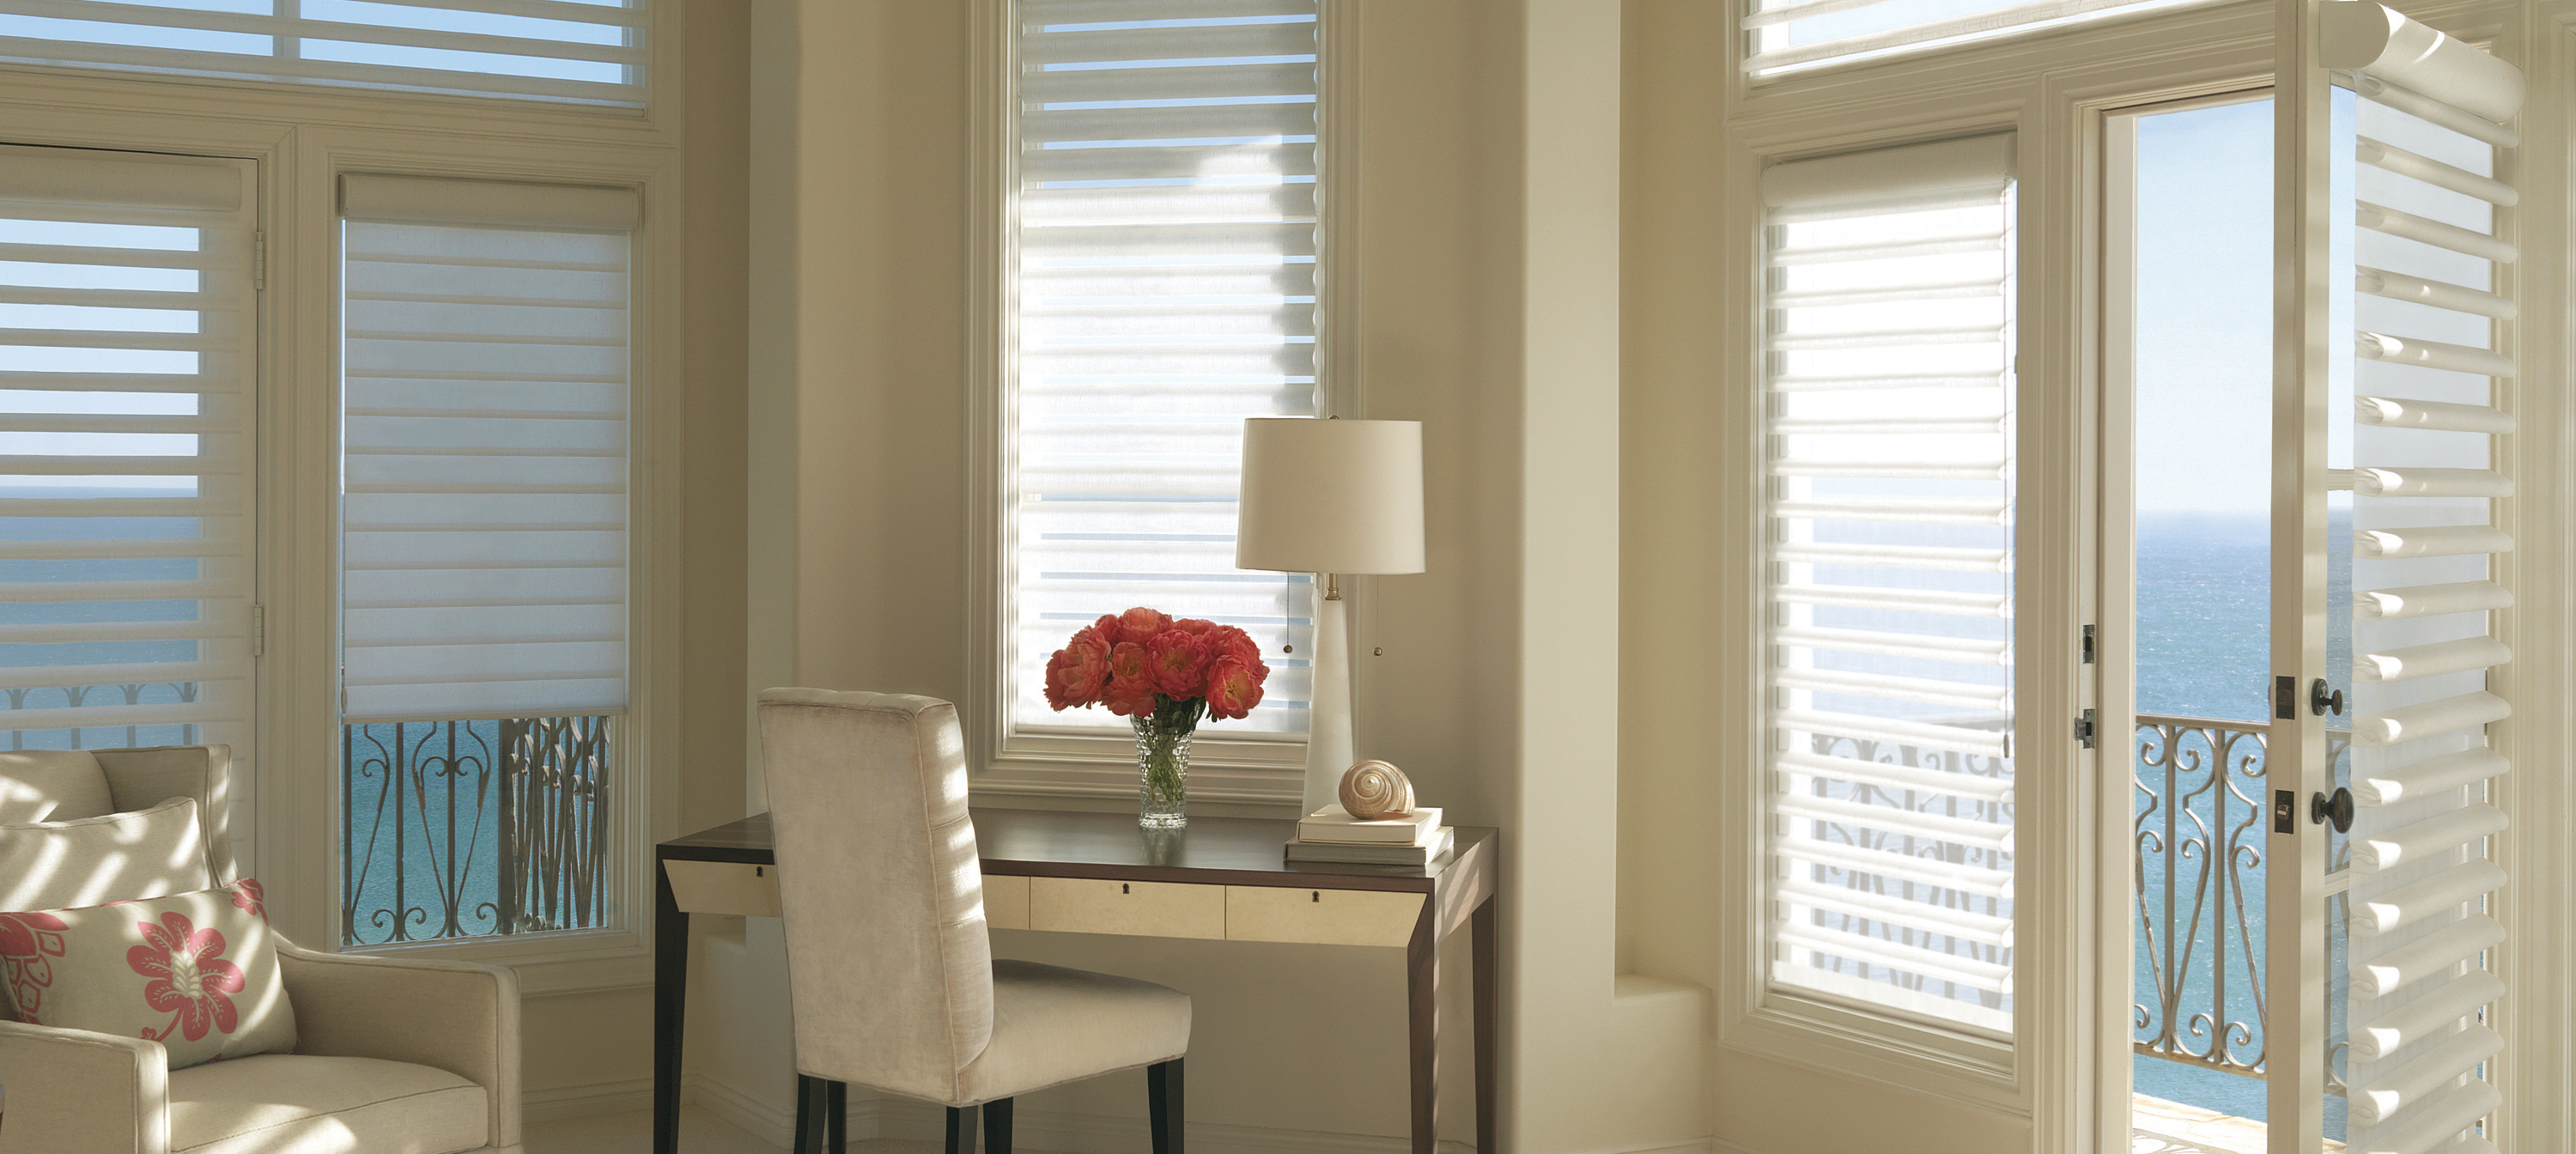 dressed well blinds duette douglass shutters sheers window the kelowna services shades hunter douglas products